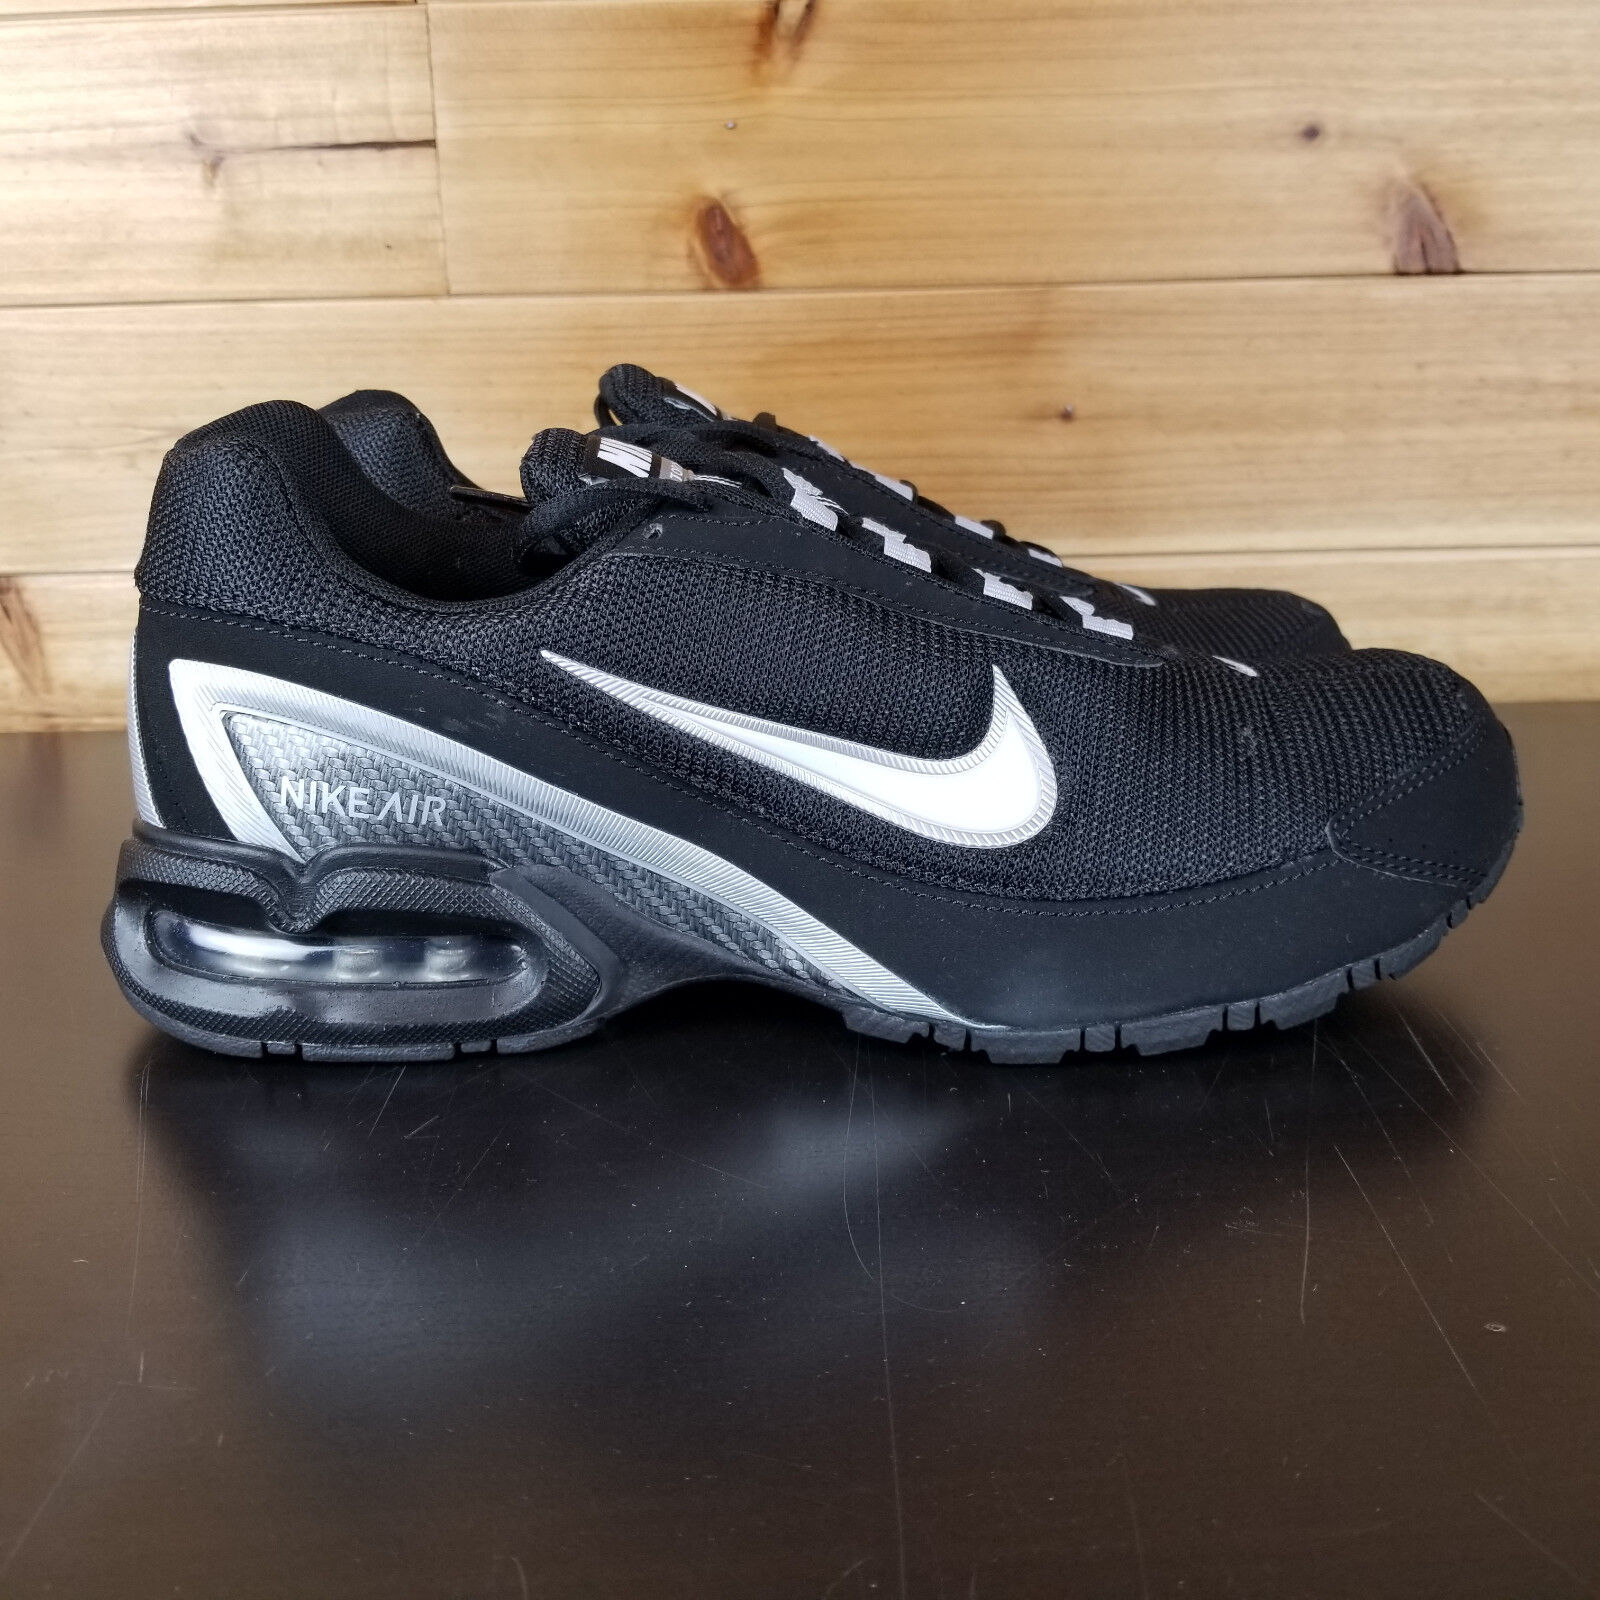 Nike Air Max Torch 3 Men's Shoes Black White 319116 011 Running Multi Size NEW